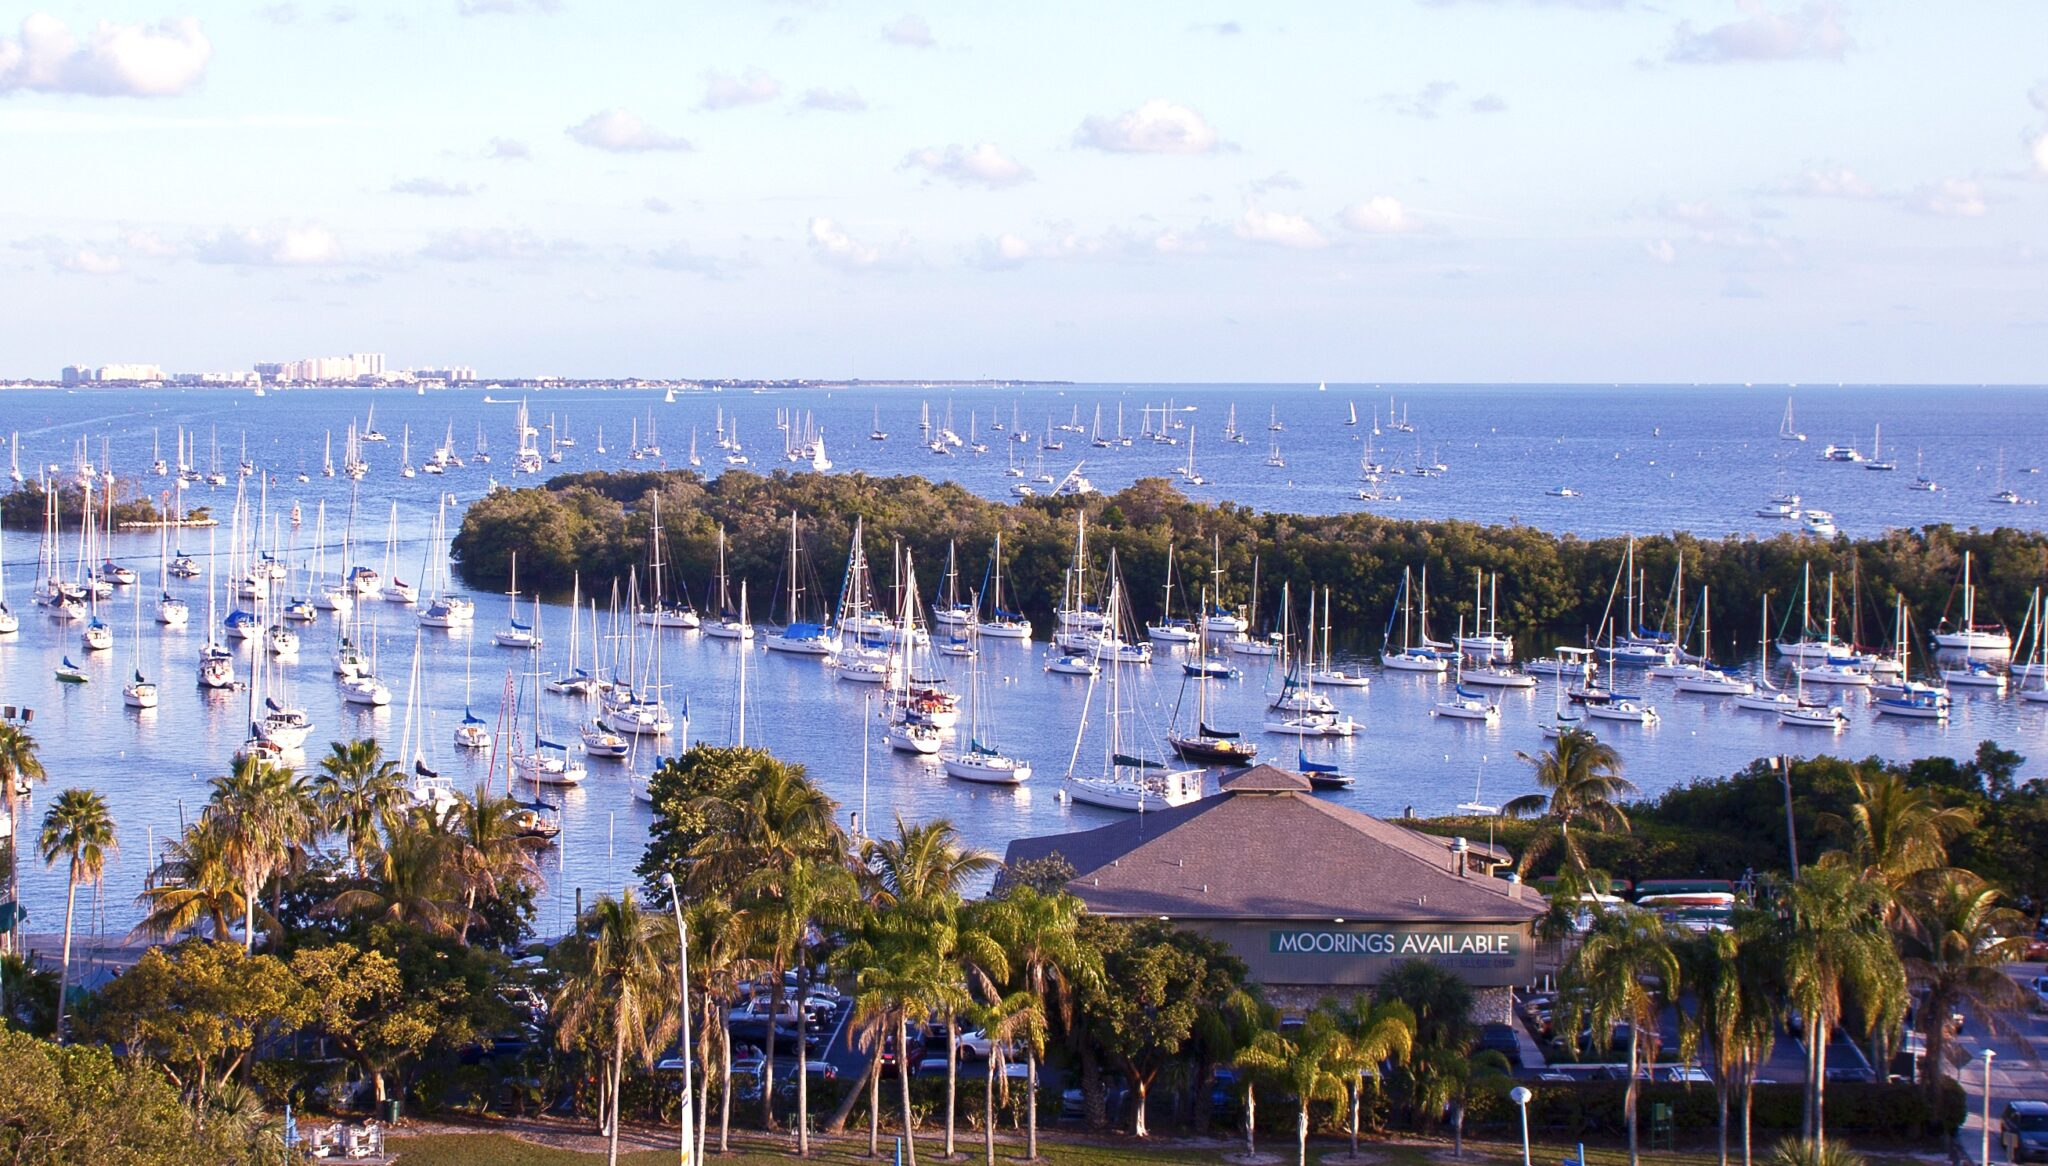 Coconut Grove Sailing: A Yacht Club for Everyone - Worth